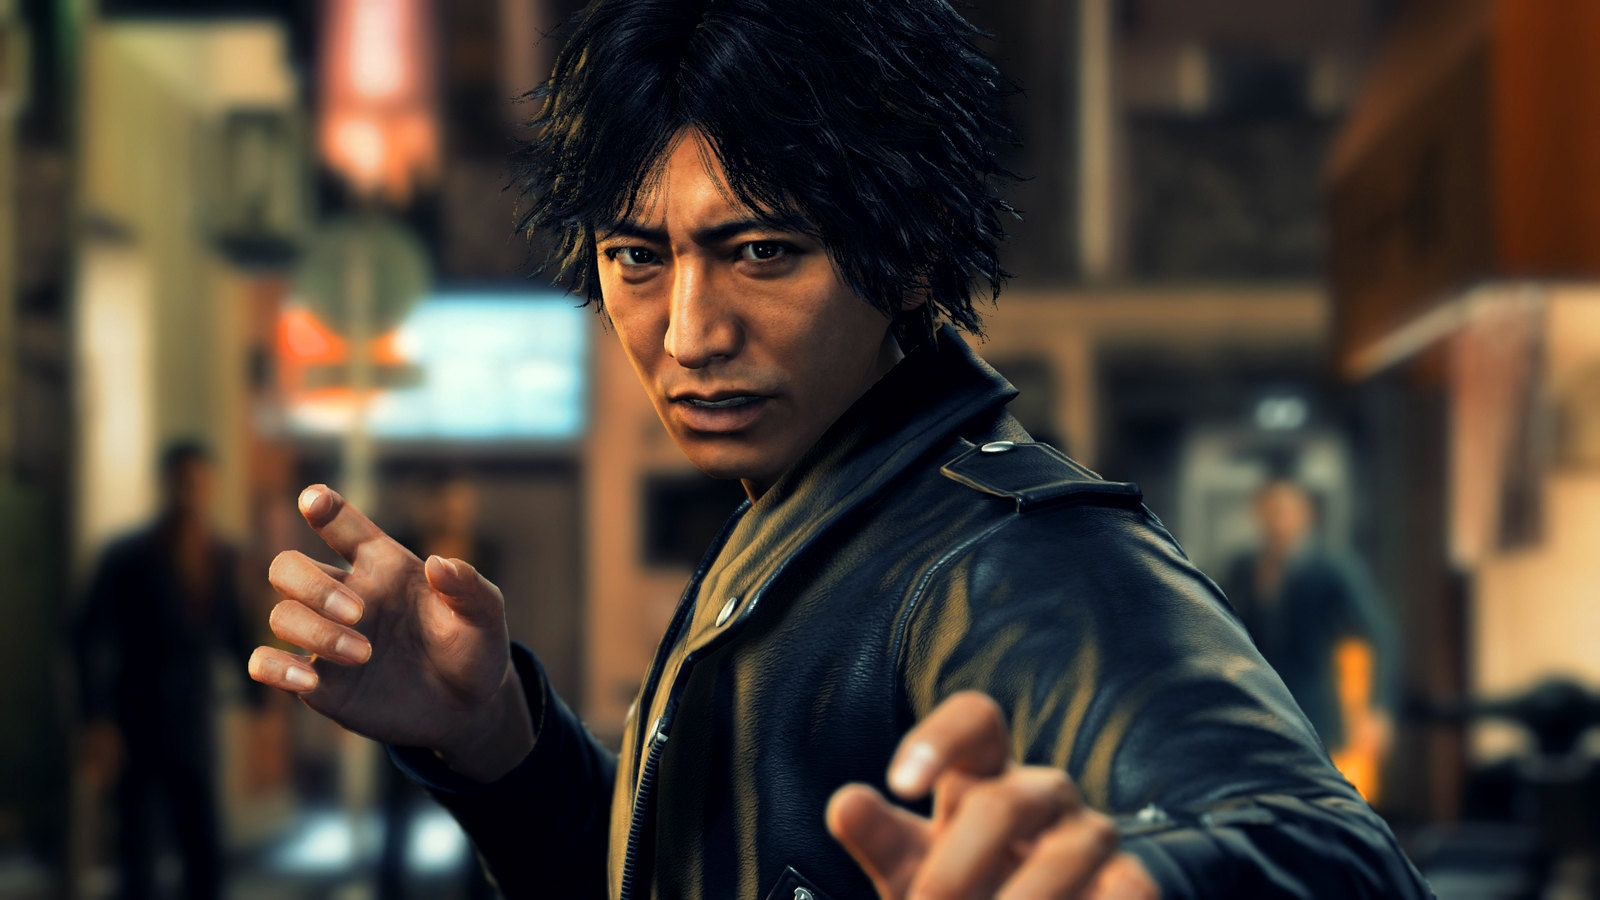 Judgment, the latest game from Yakuza creator, gets a PS4